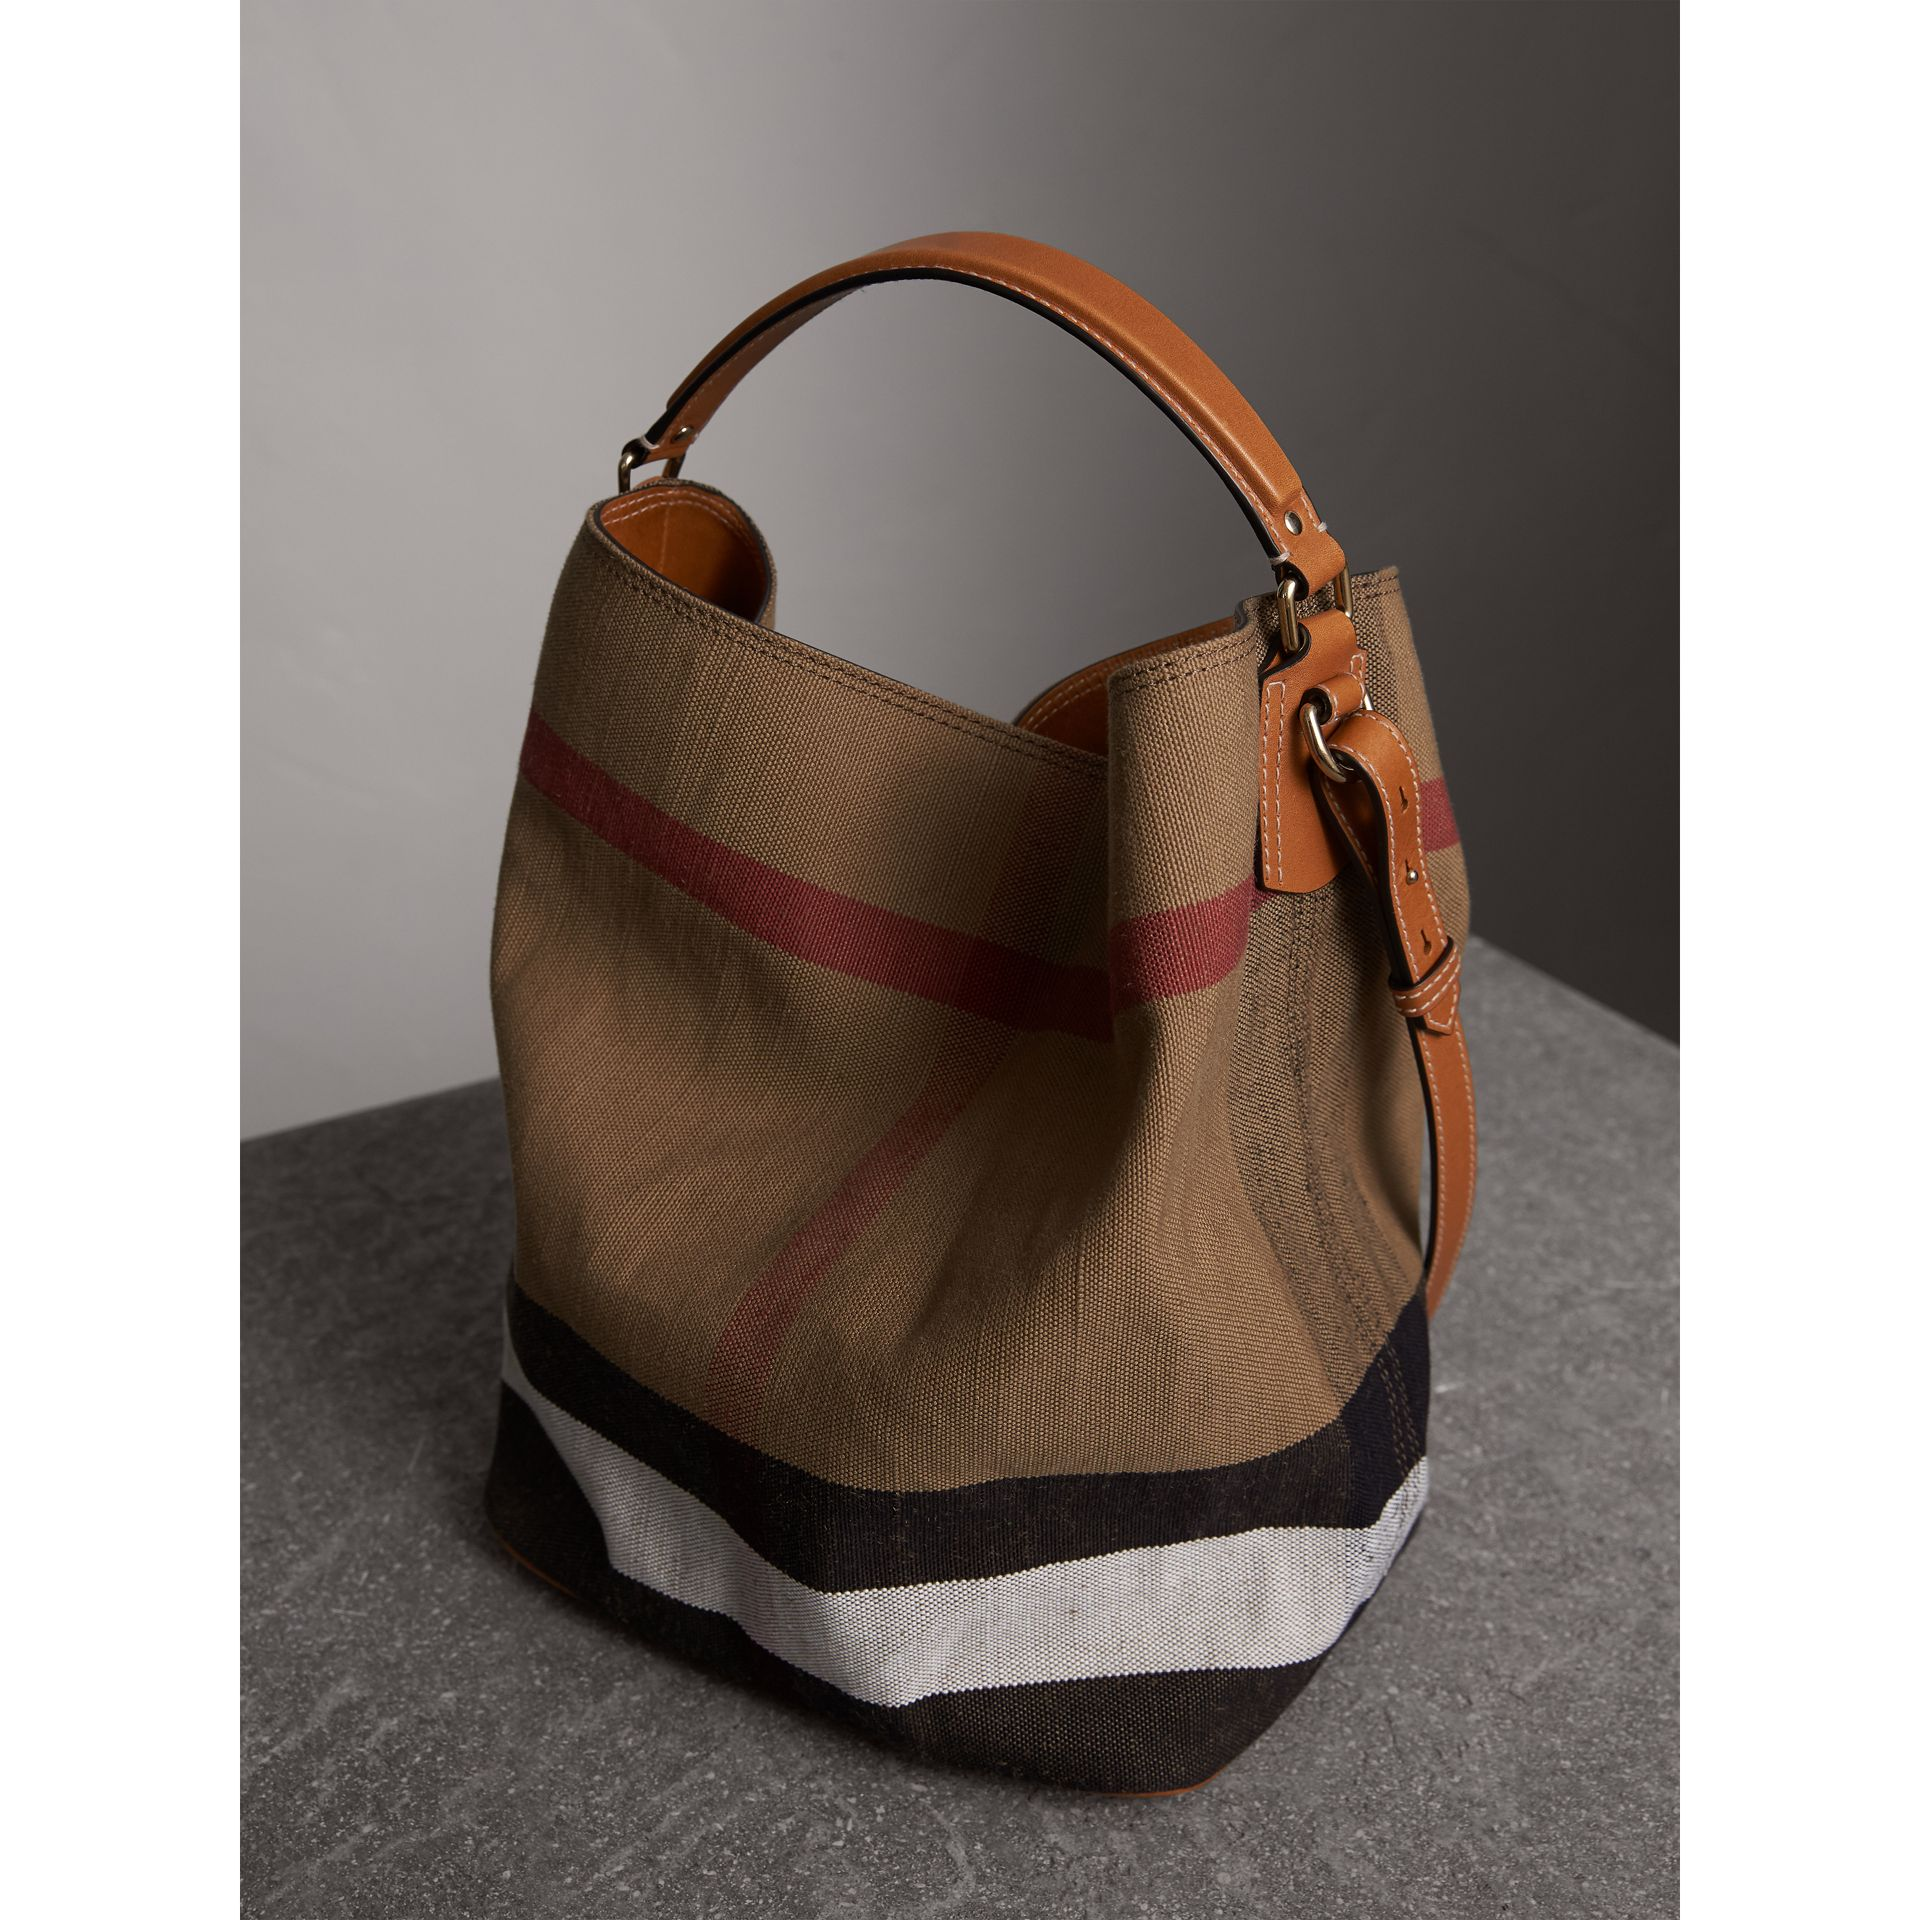 Medium Canvas Check Hobo Bag in Saddle Brown - Women | Burberry - gallery image 7